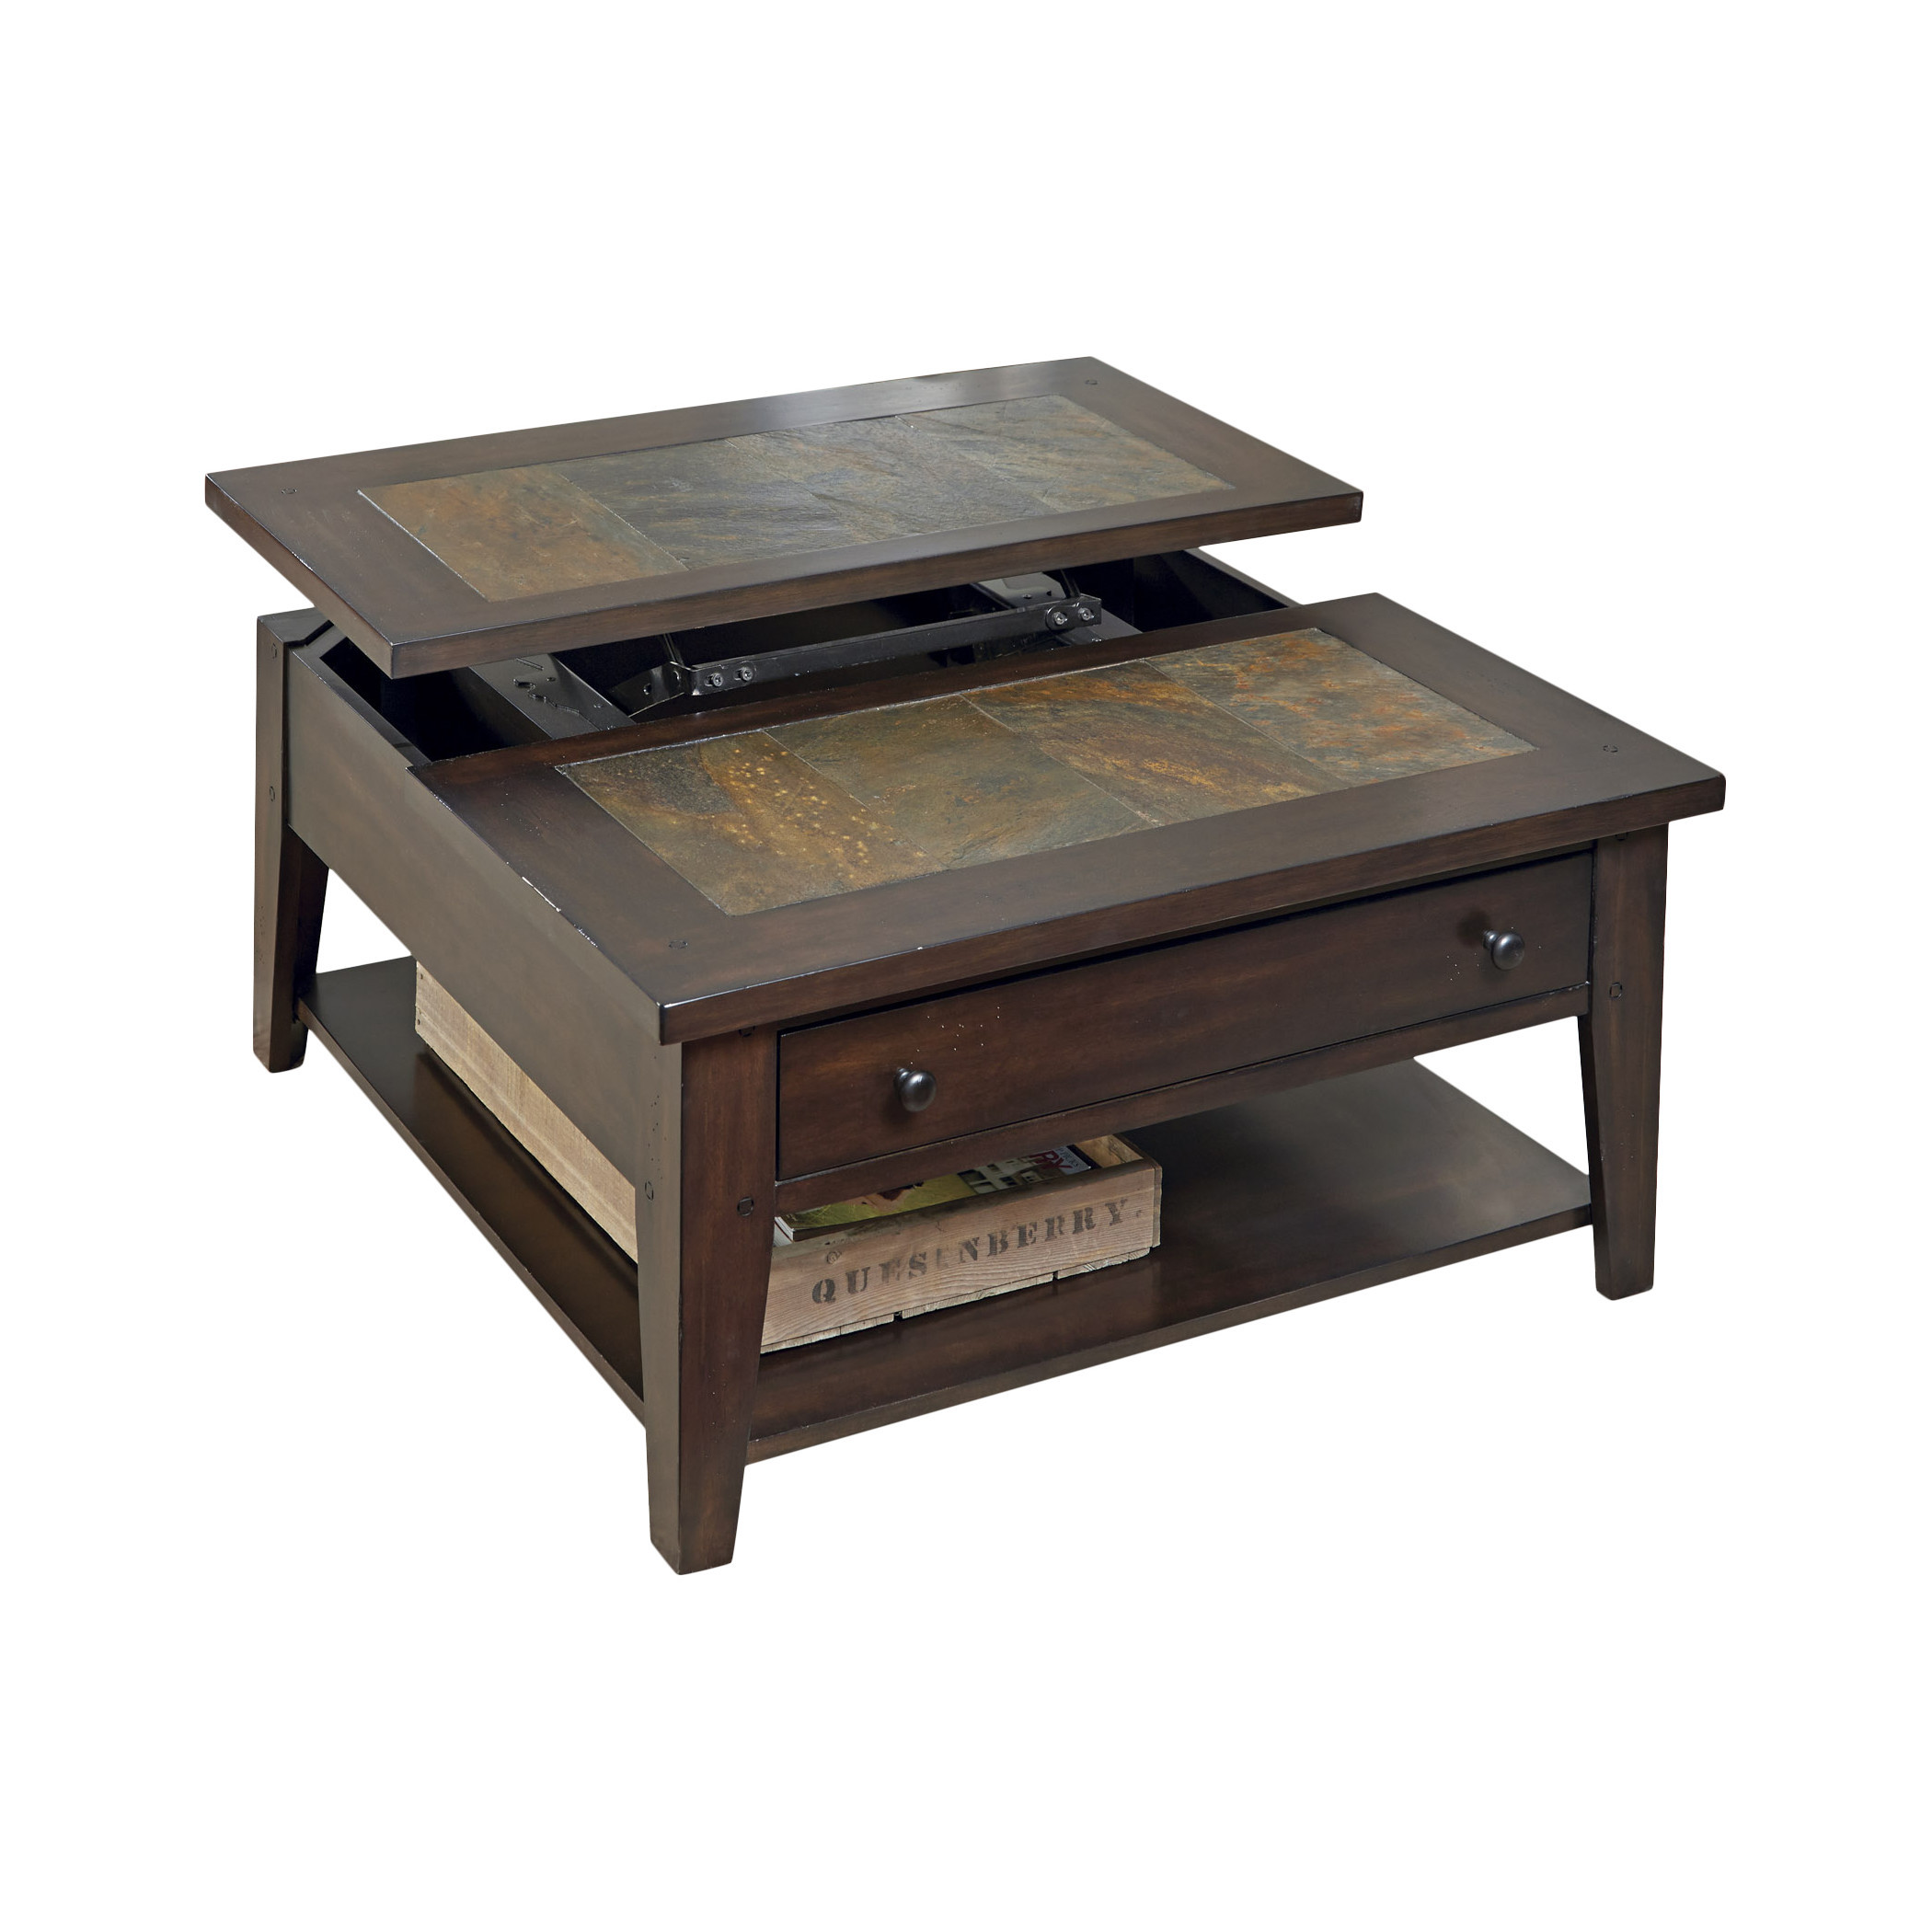 Best ideas about Coffee Table Lift Top . Save or Pin Loon Peak Leadville North Coffee Table with Lift Top Now.